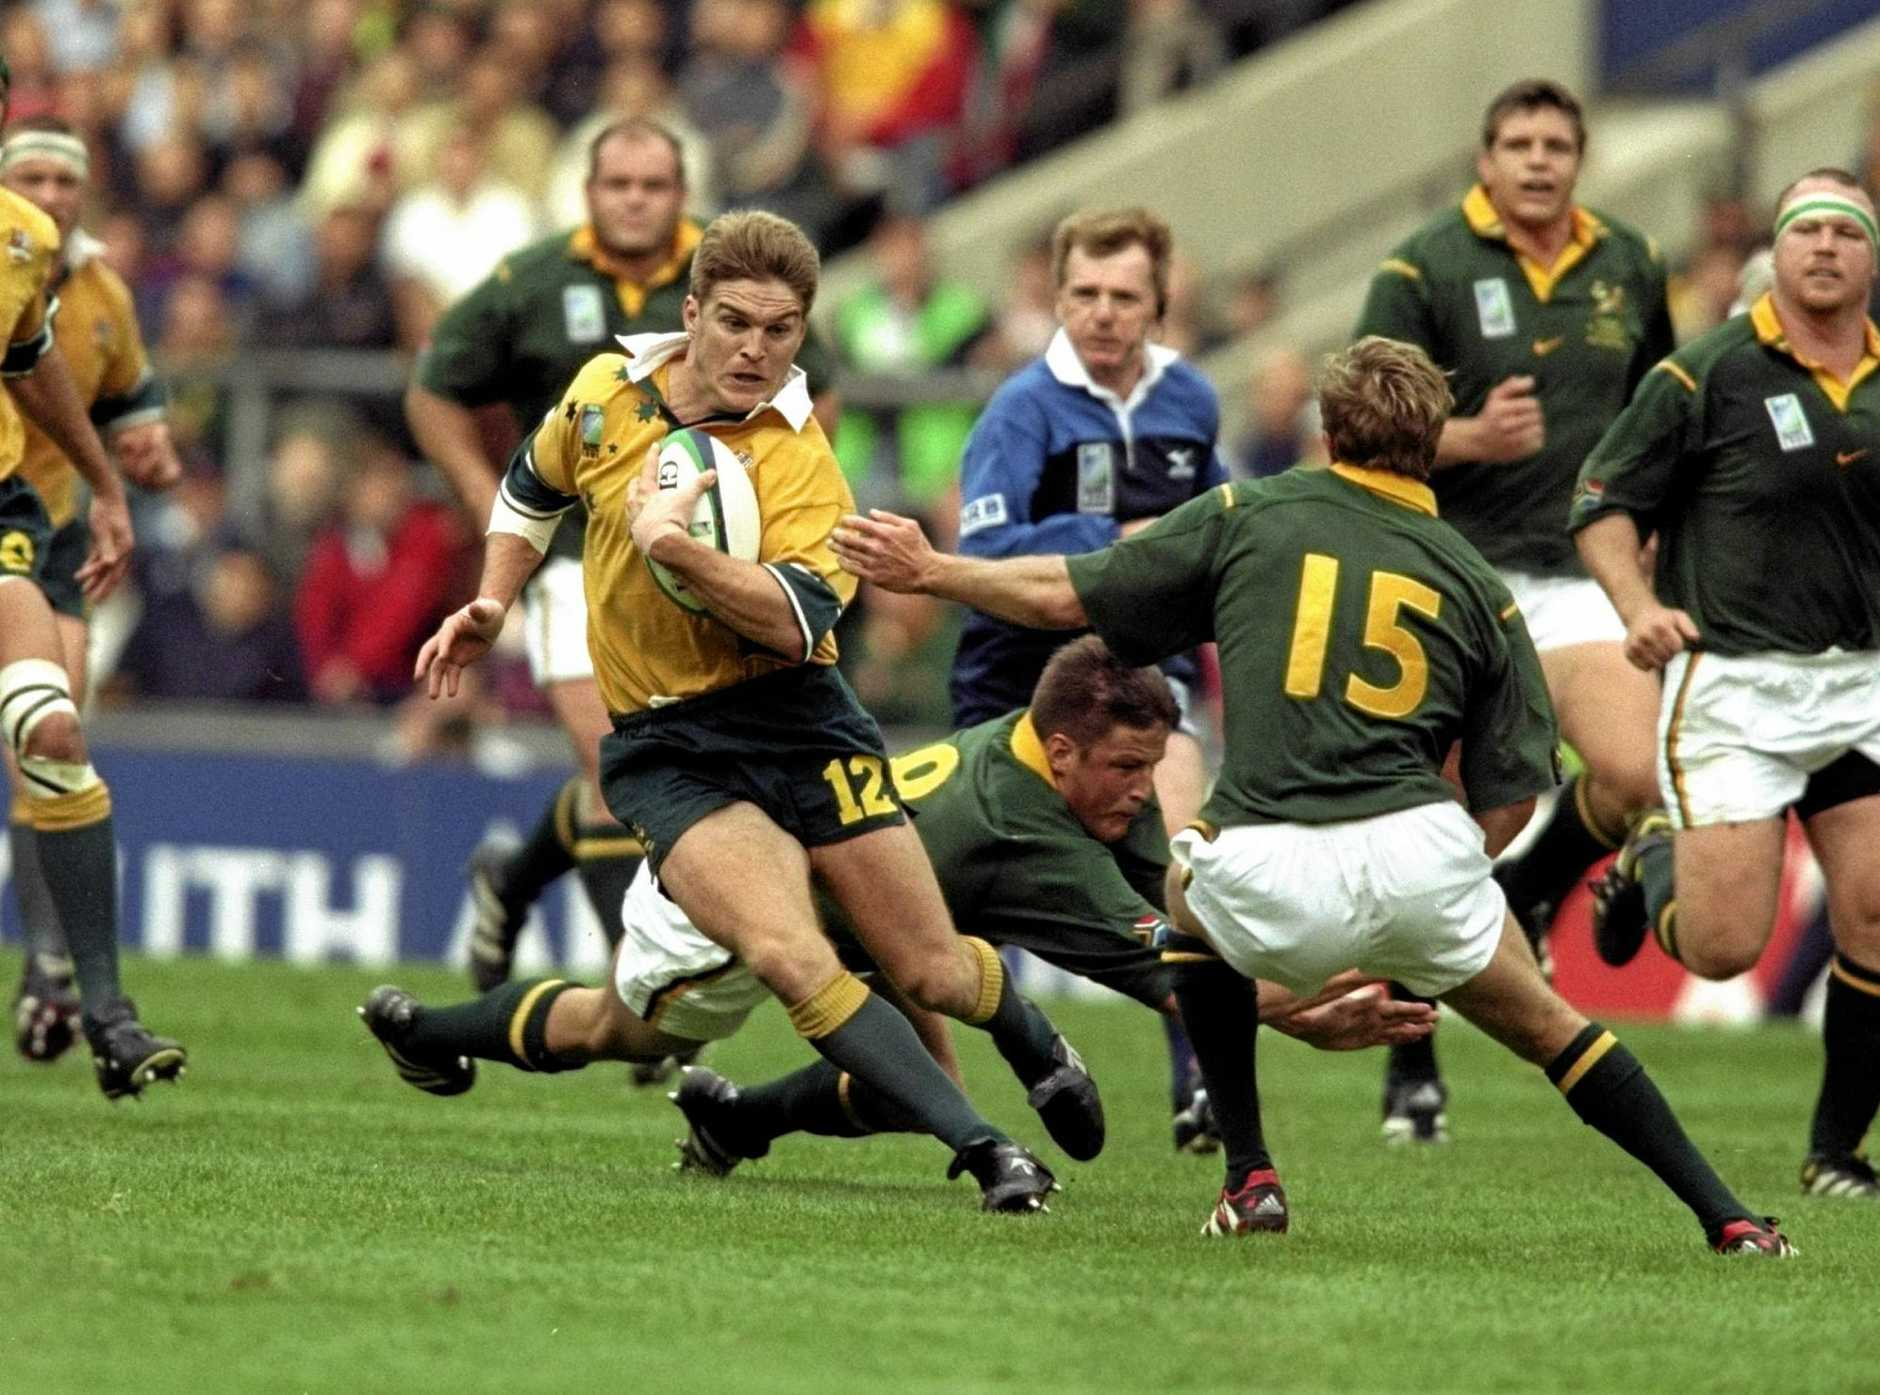 RUGBY ROYALTY: Toowoomba product and former Wallaby Tim Horan will MC Downlands College's Wake Up With The Wallabies breakfast alongside special guest John Eales.